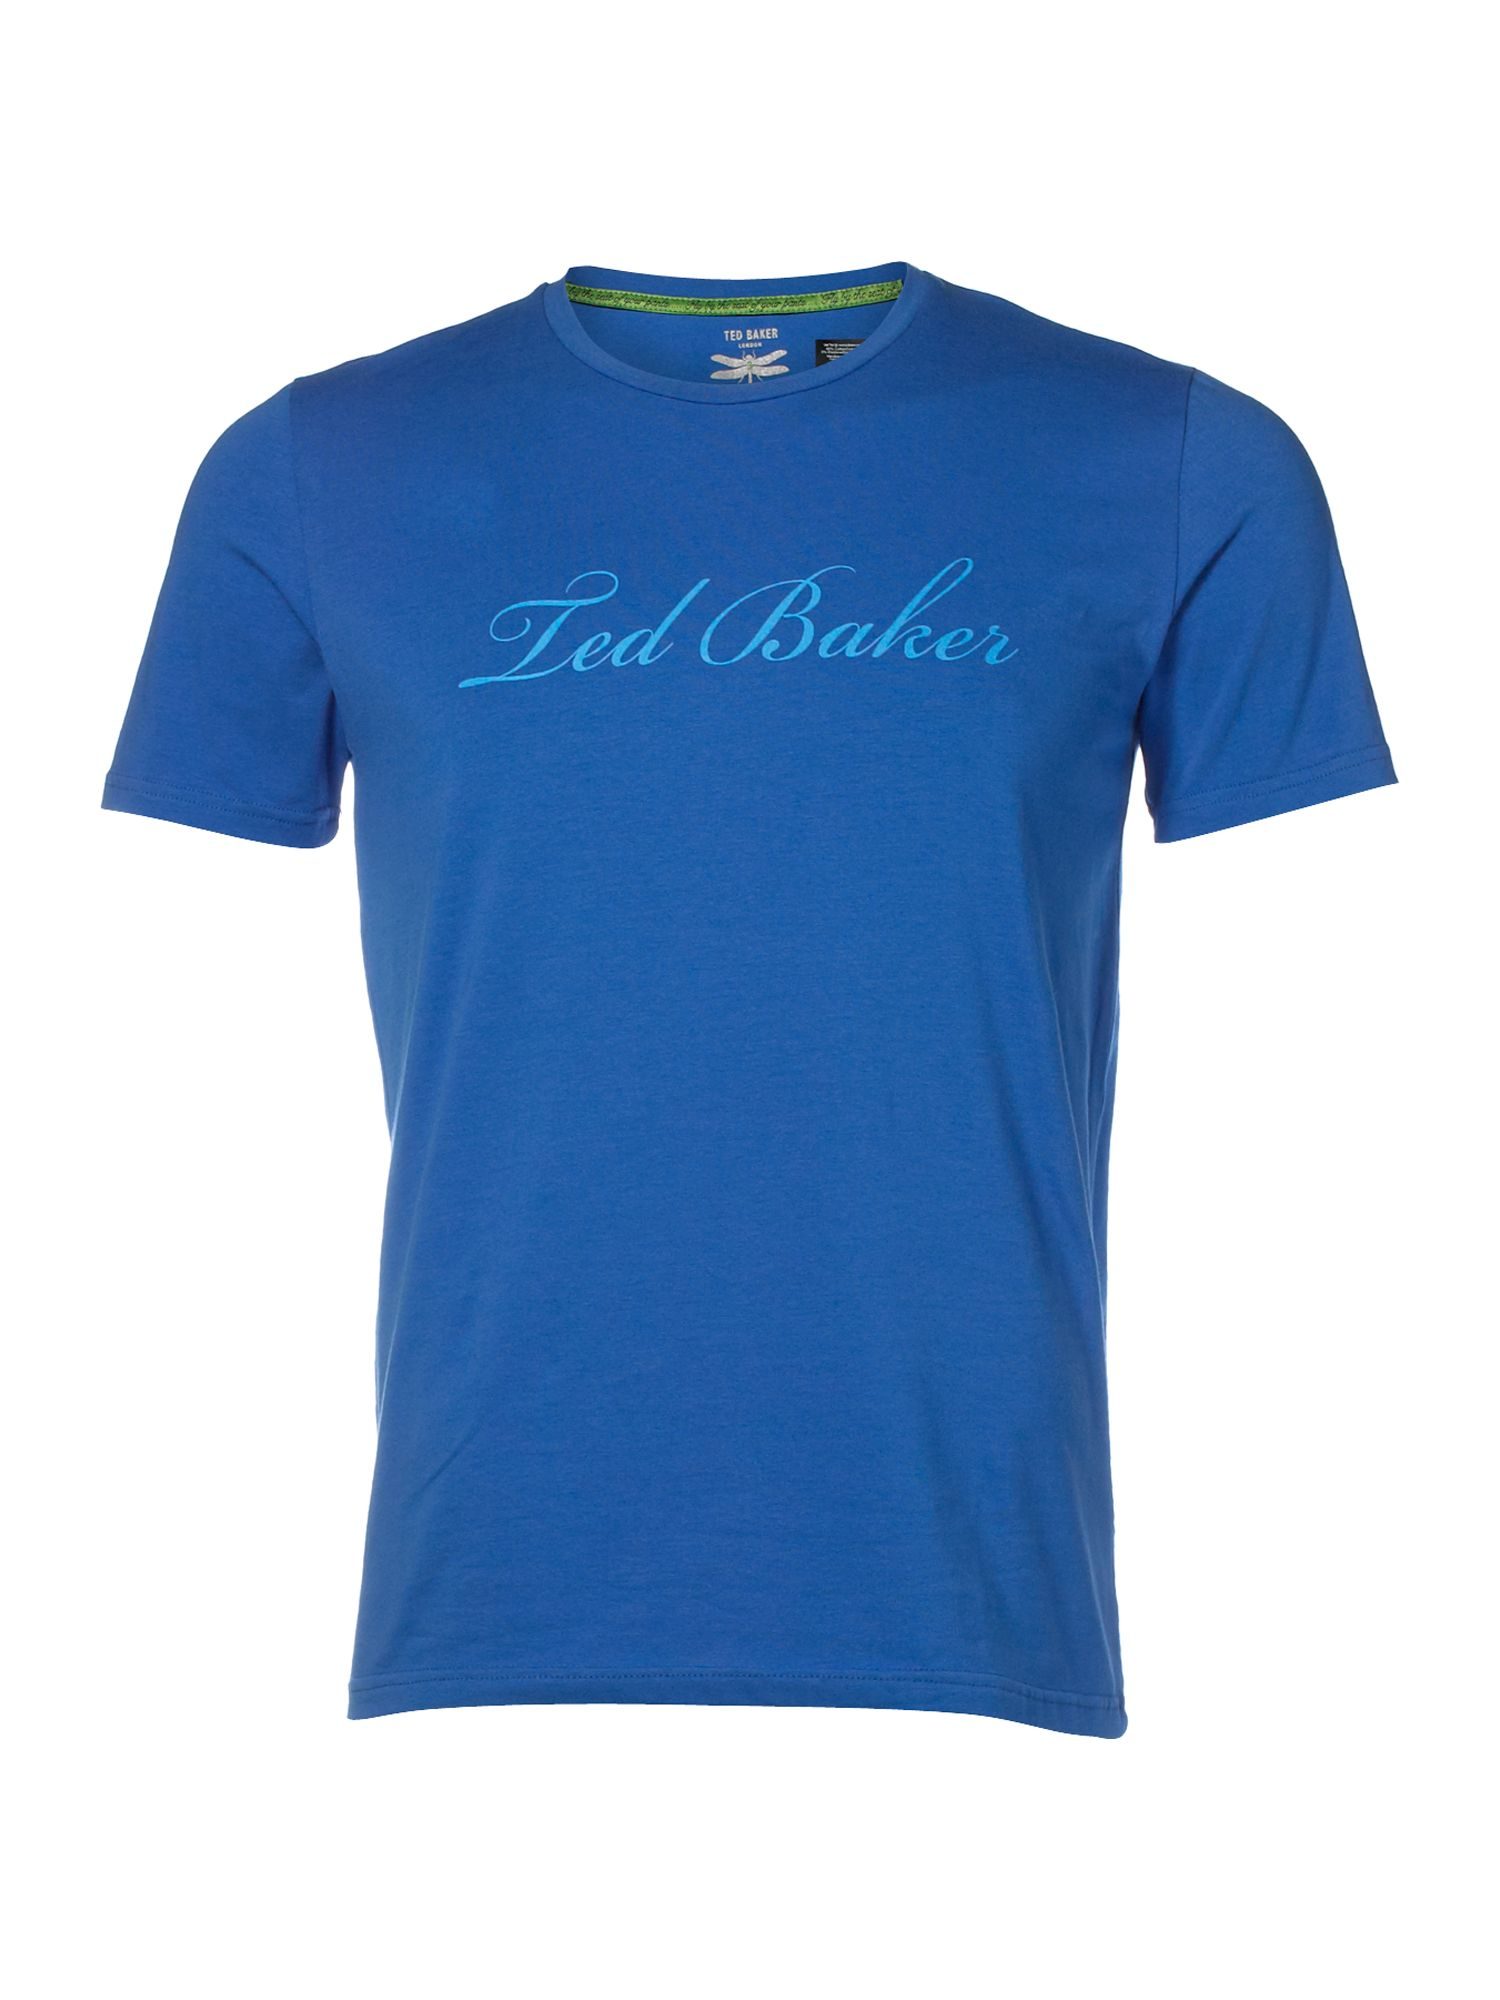 Ted Baker Mens Ted Baker Crew neck lounge T-shirt,